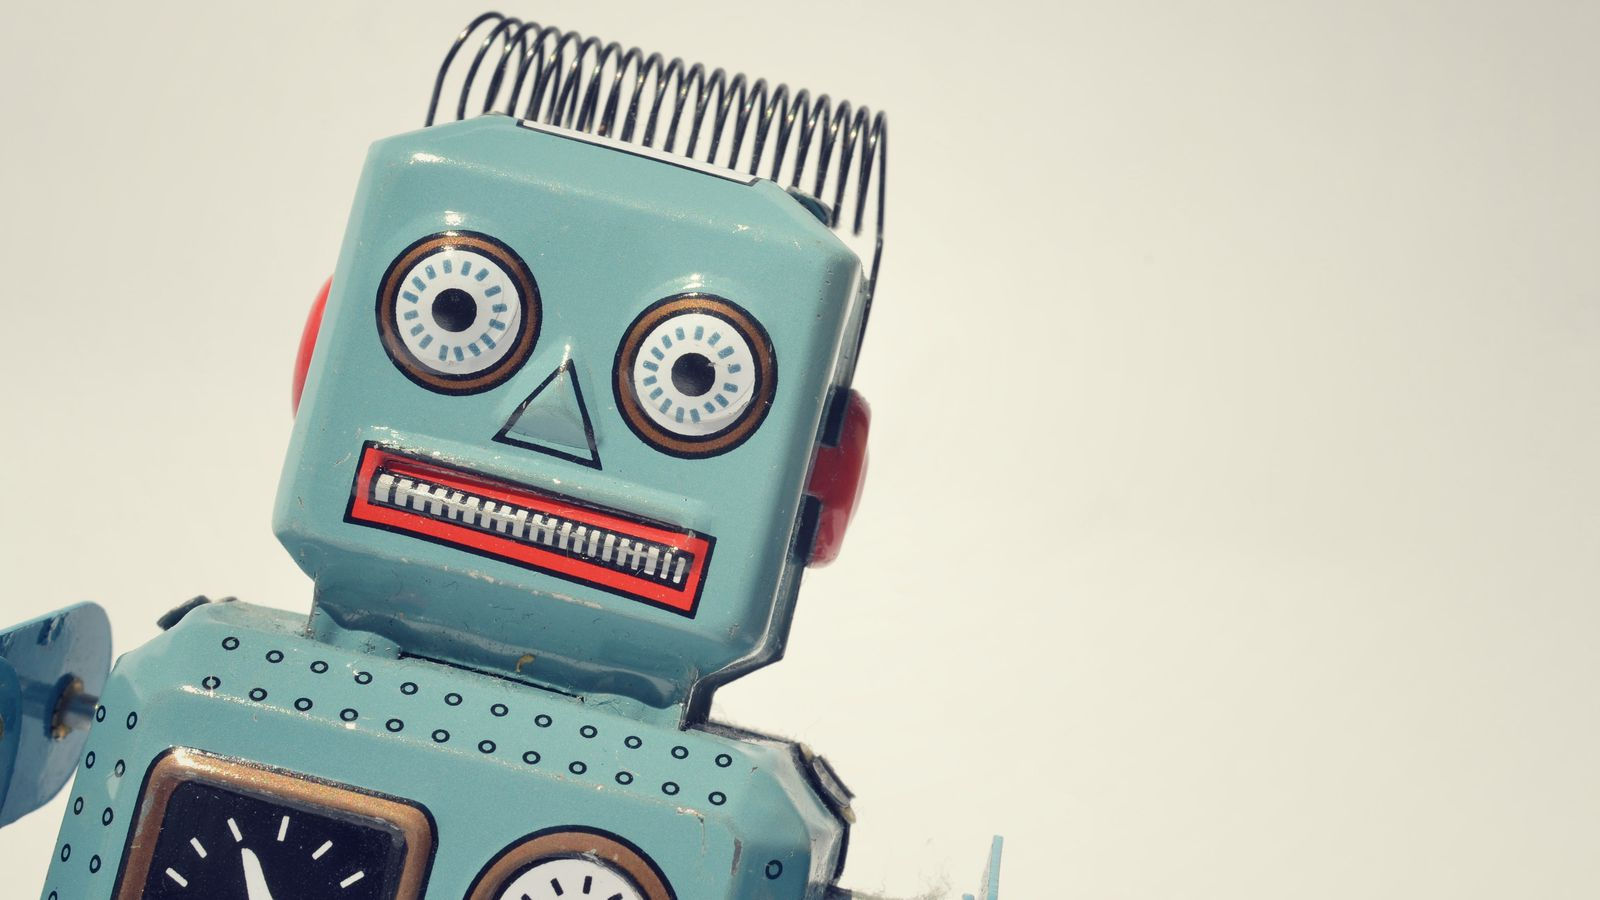 This Oxford Professor Thinks Artificial Intelligence Will Destroy